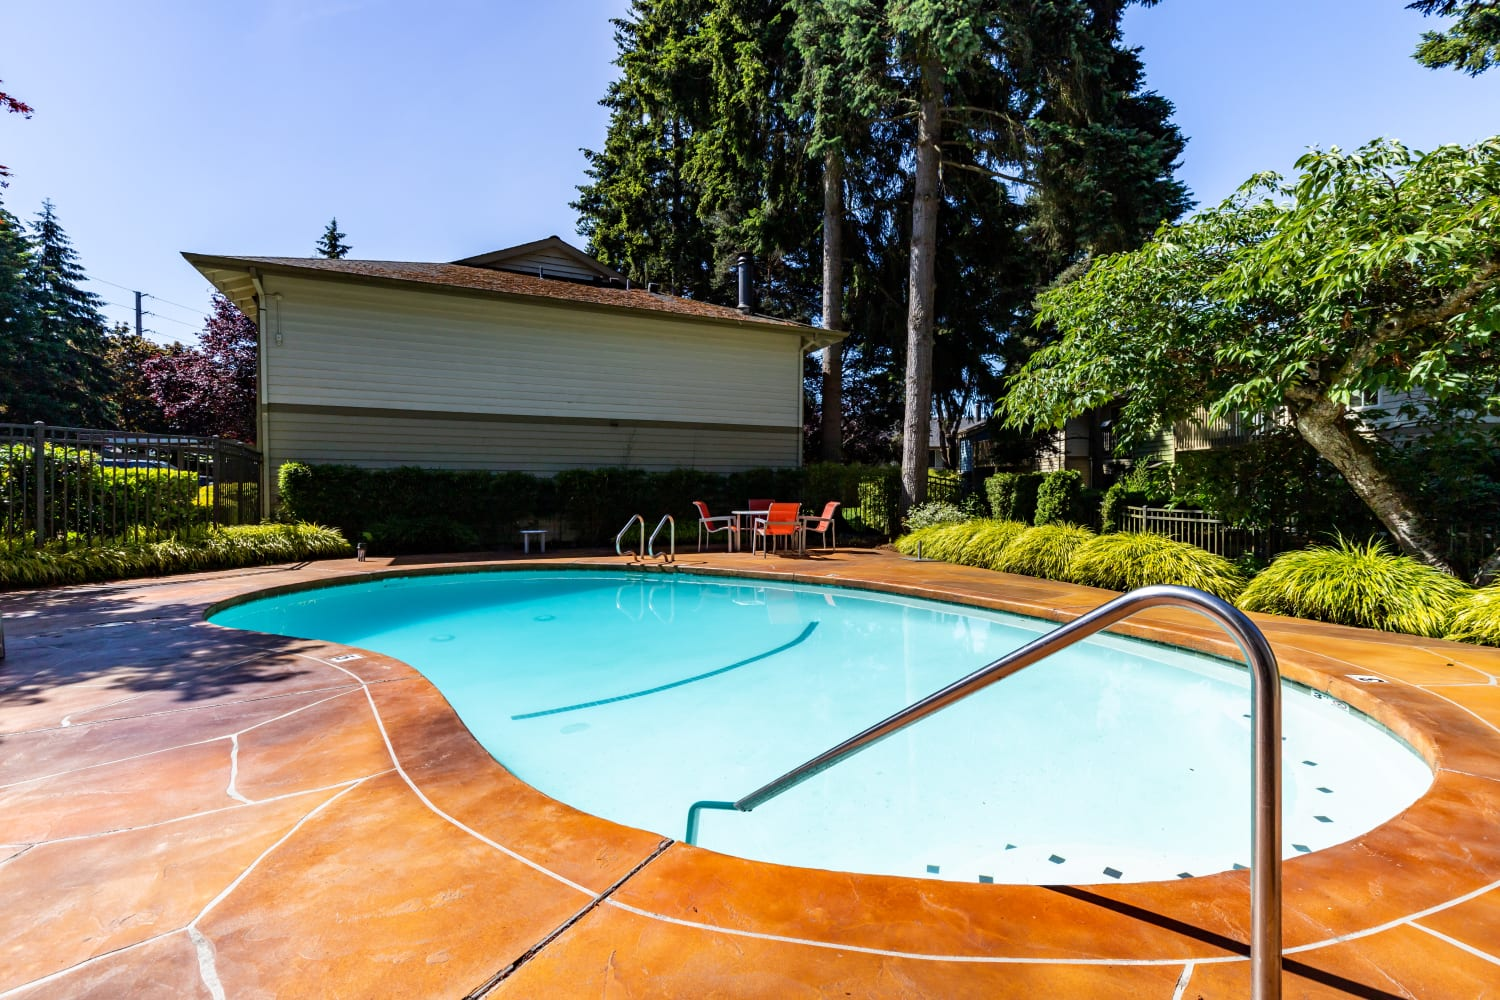 Outdoor community pool at Edgewood Park Apartments in Bellevue, Washington